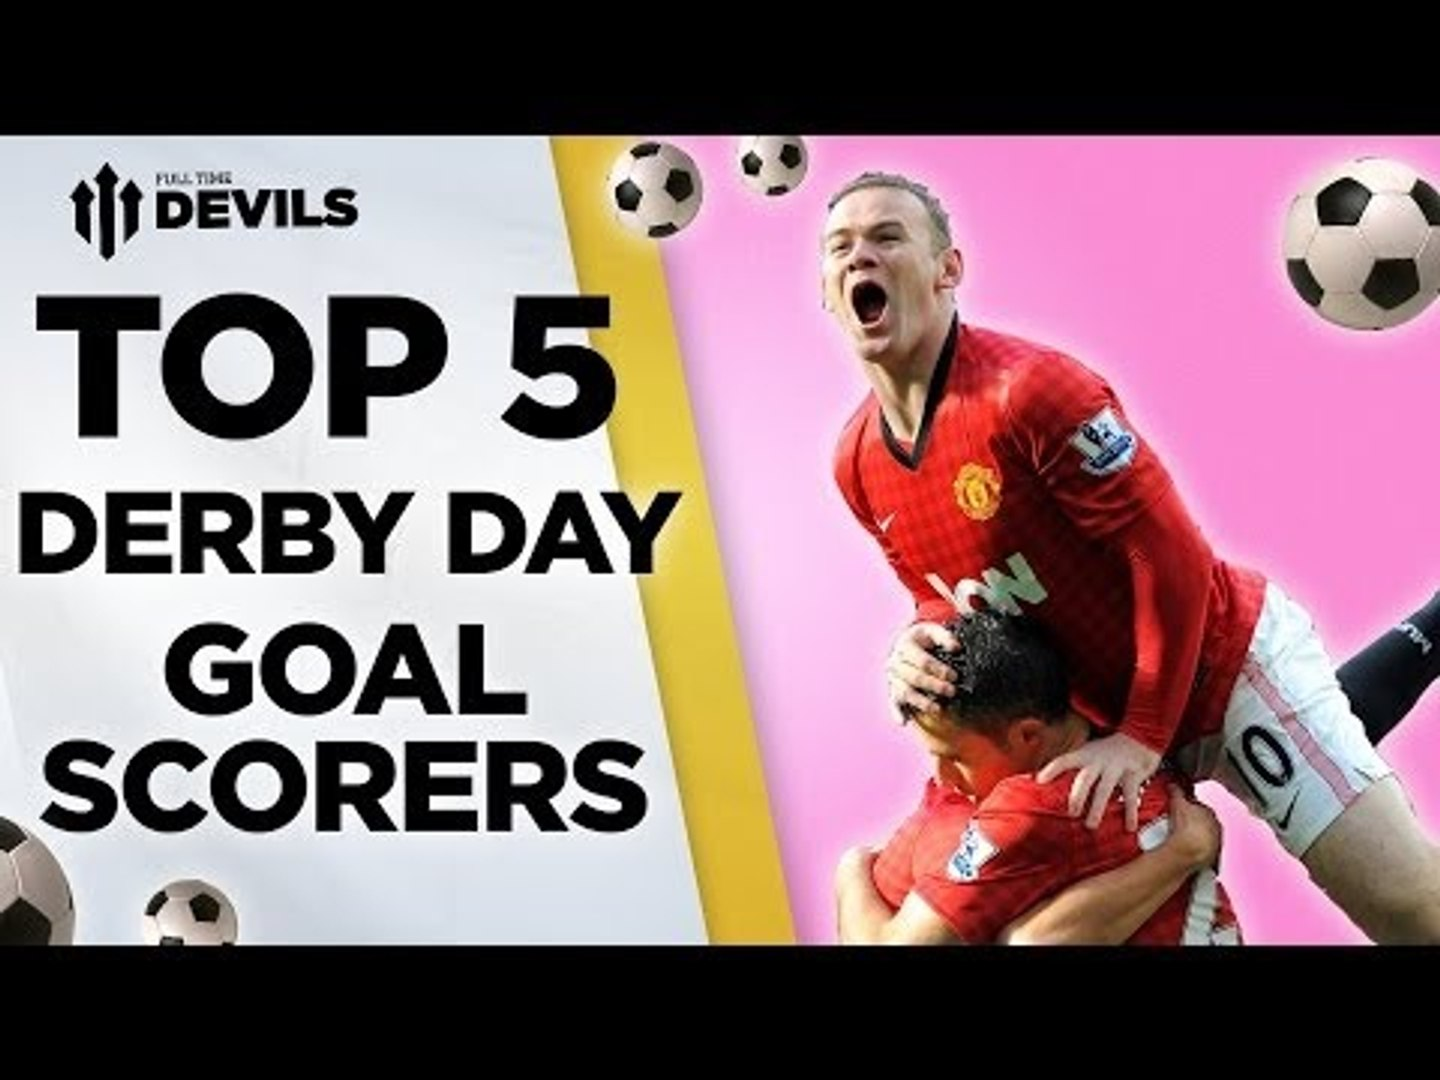 Top 5 Derby Day Goalscorers | Manchester United vs Manchester City | DEVILS